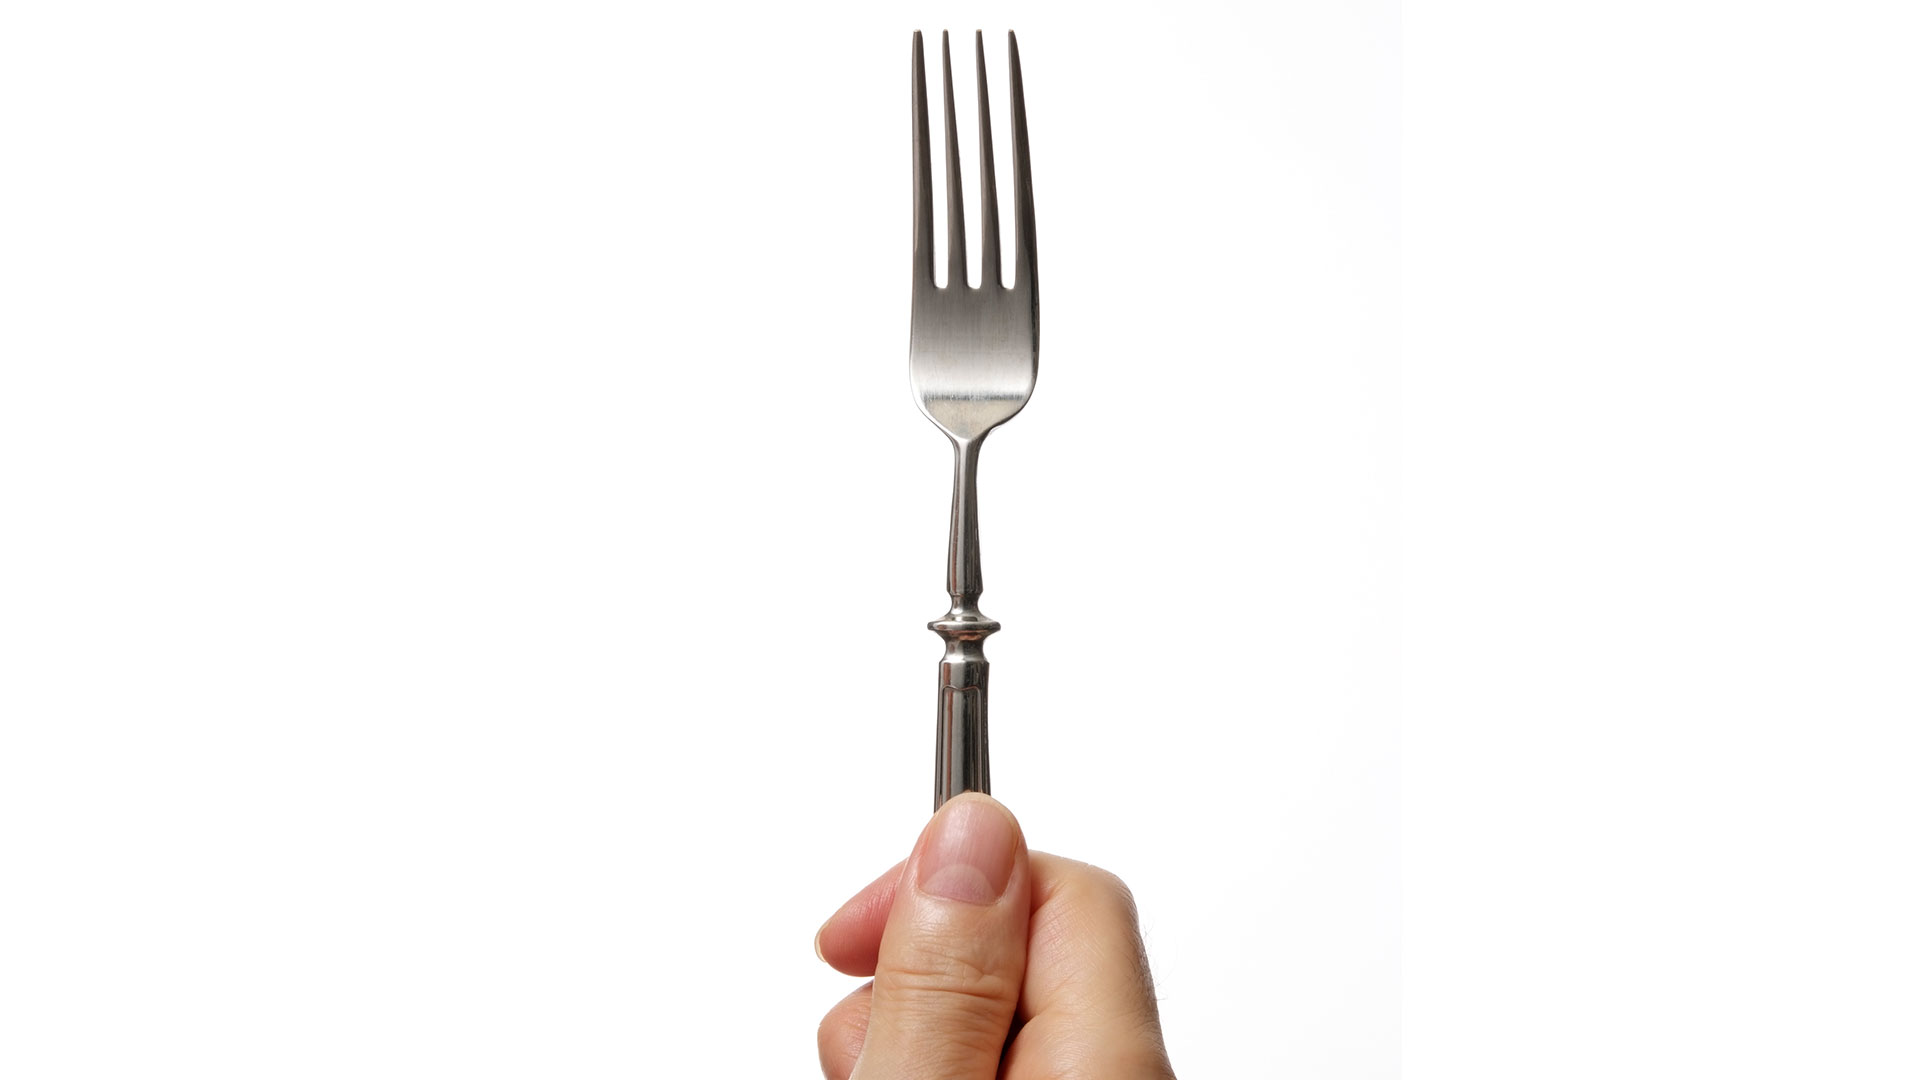 The Trick to Perfectly-Hung Pictures? A Fork!